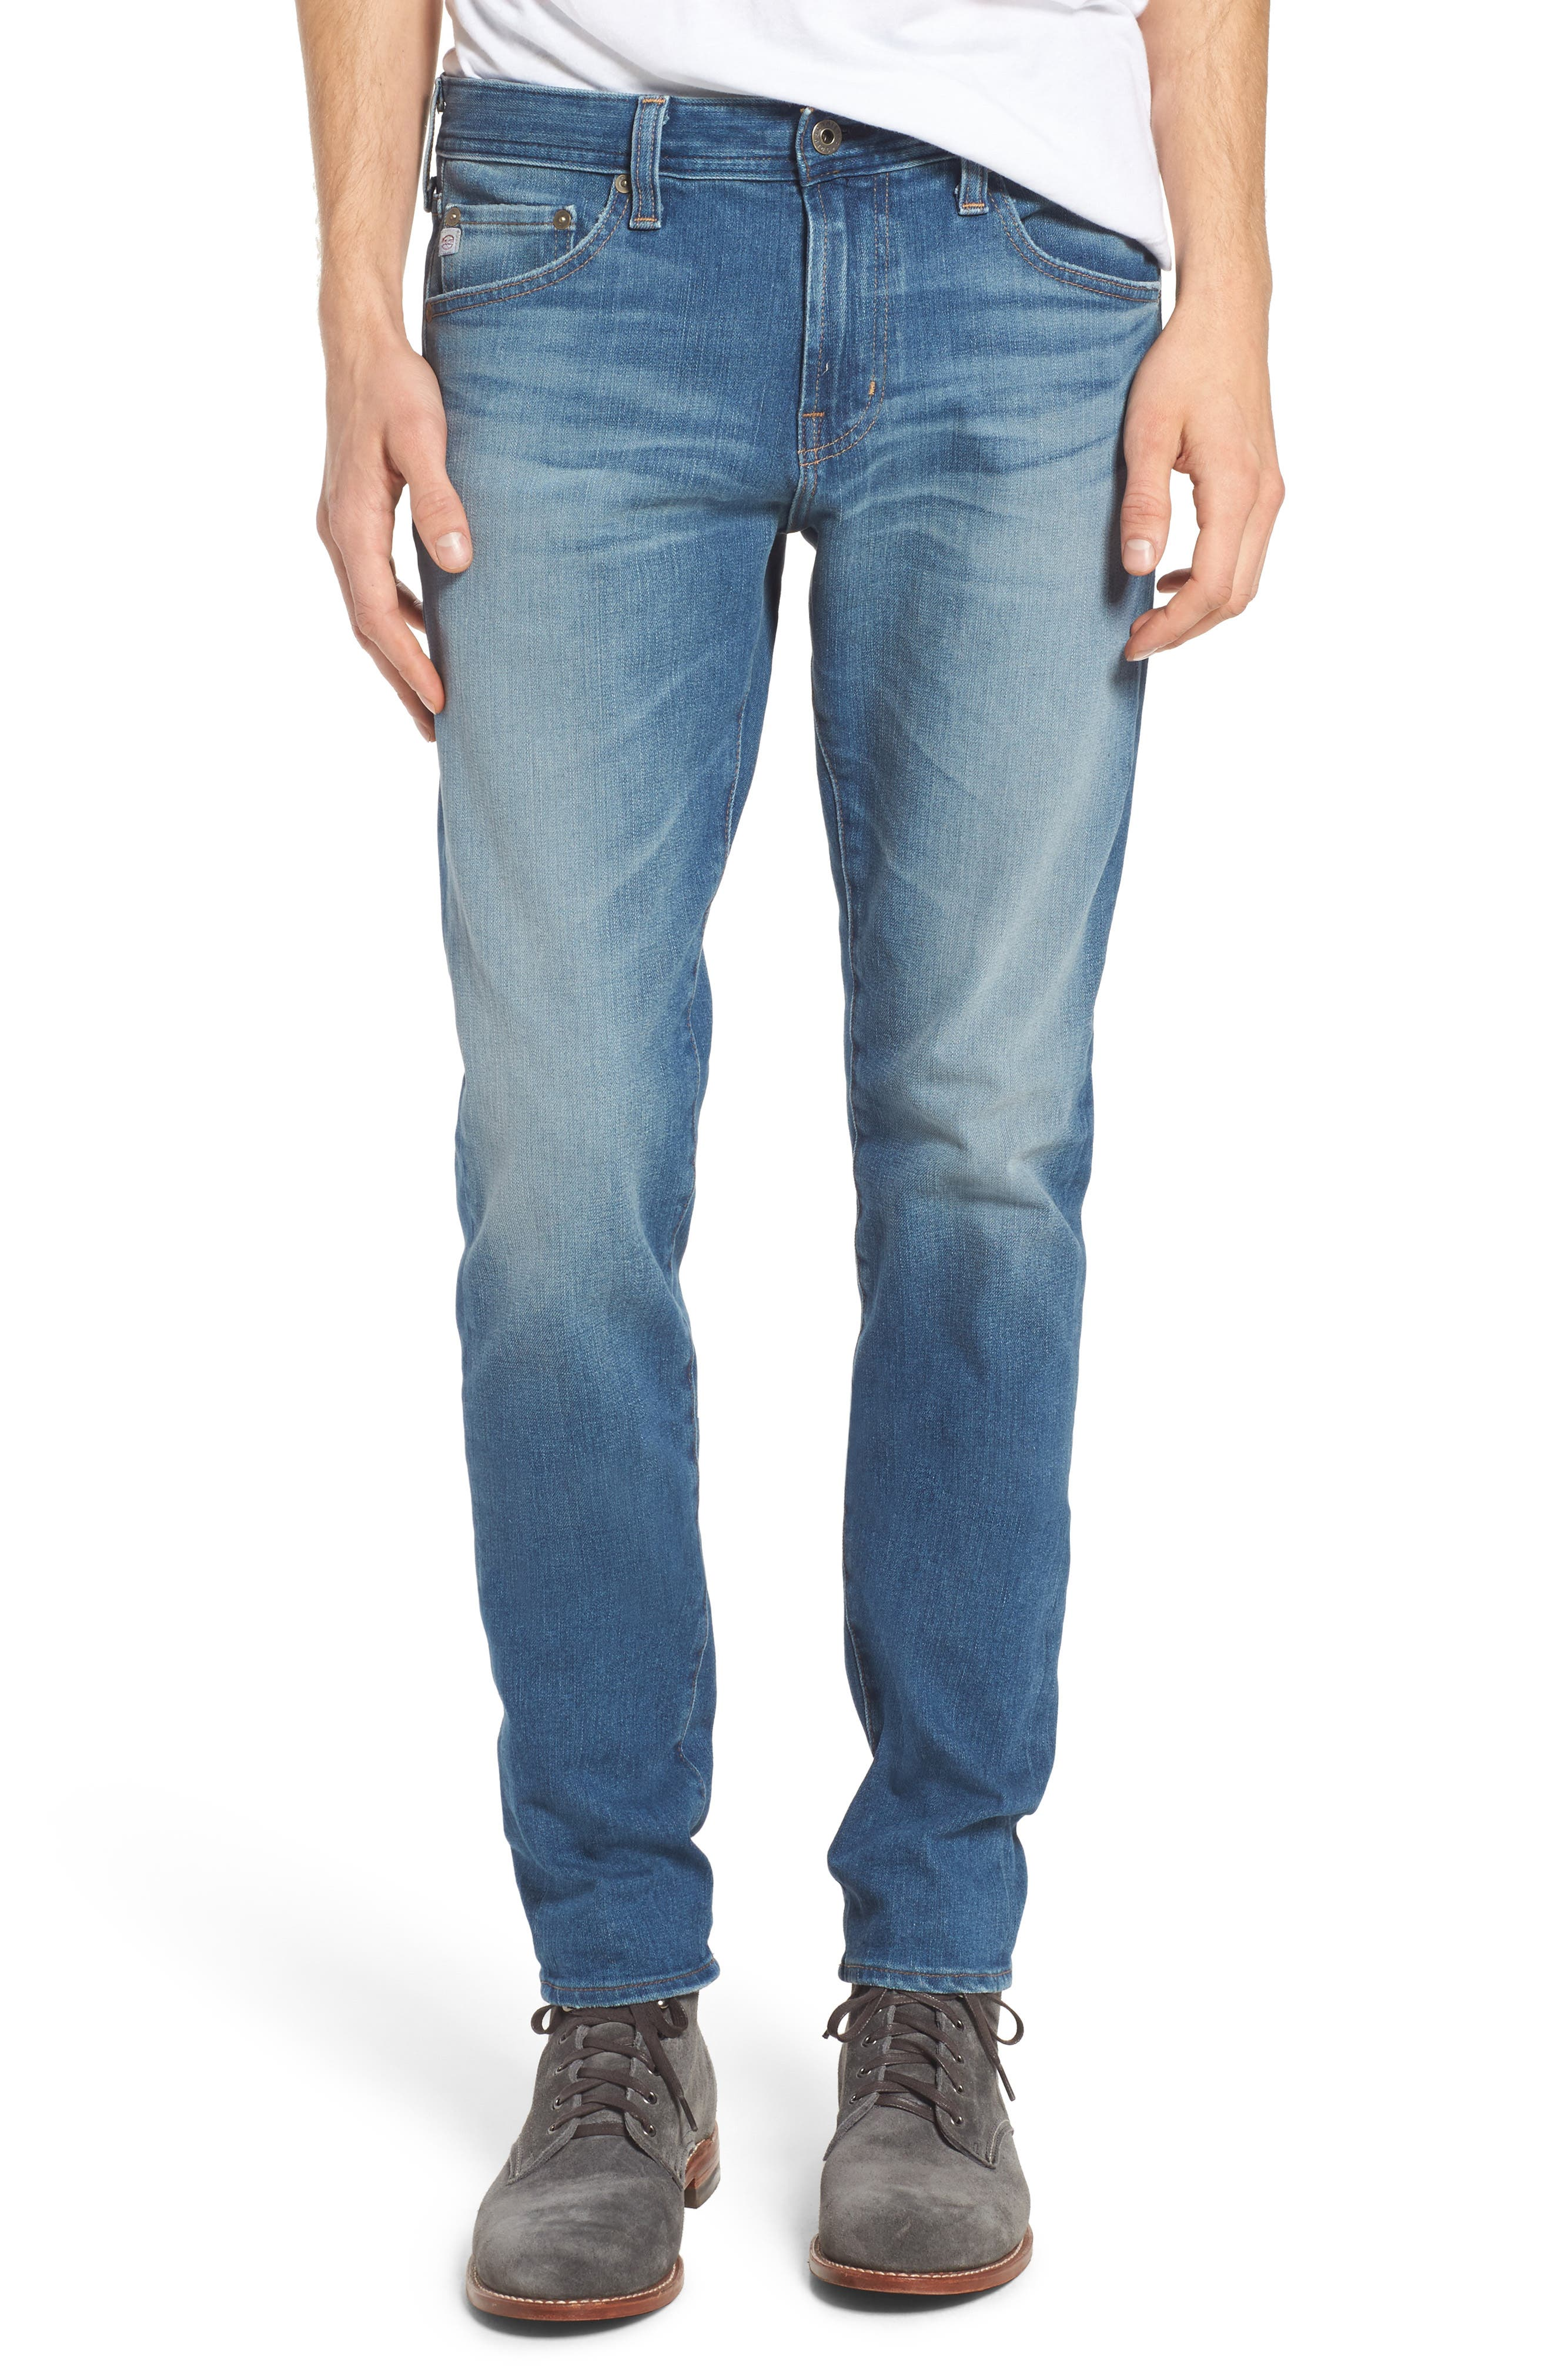 Dylan Slim Skinny Fit Jeans,                             Main thumbnail 1, color,                             Audition